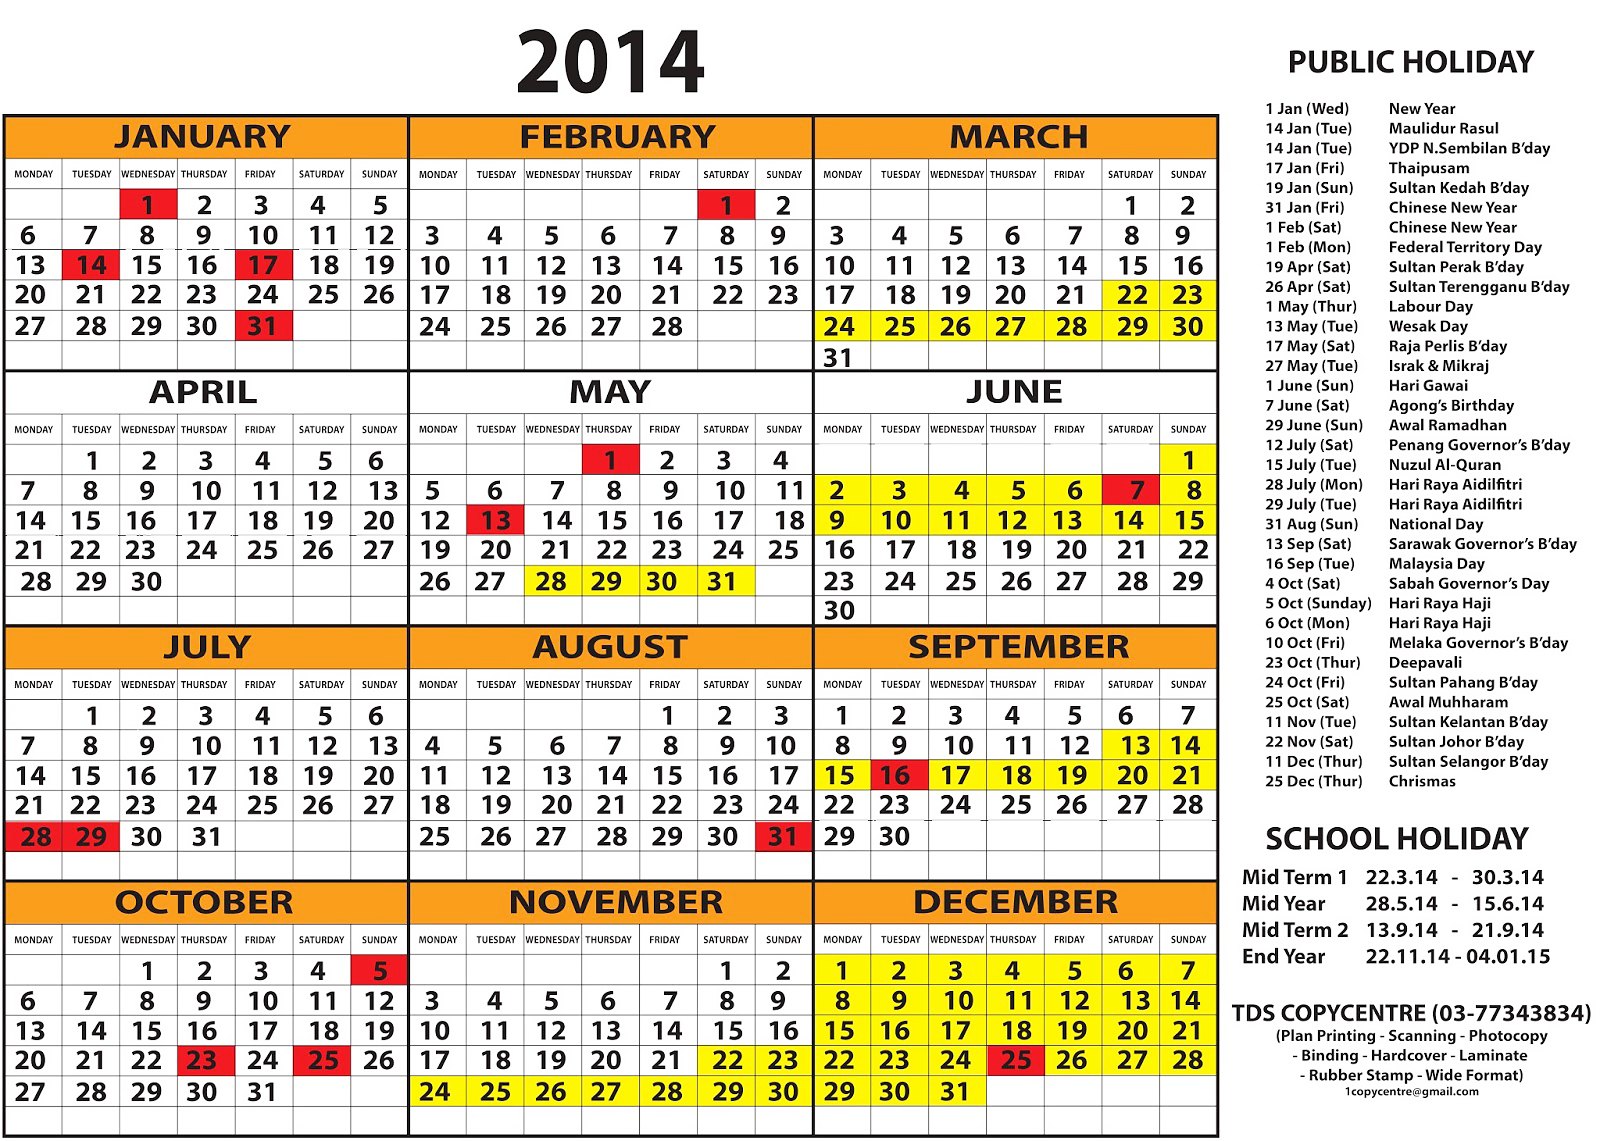 Gregorian Calendar 2014 Malaysia Calendar For Year 2014 United States Time And Date Rabia Sensei December 2013